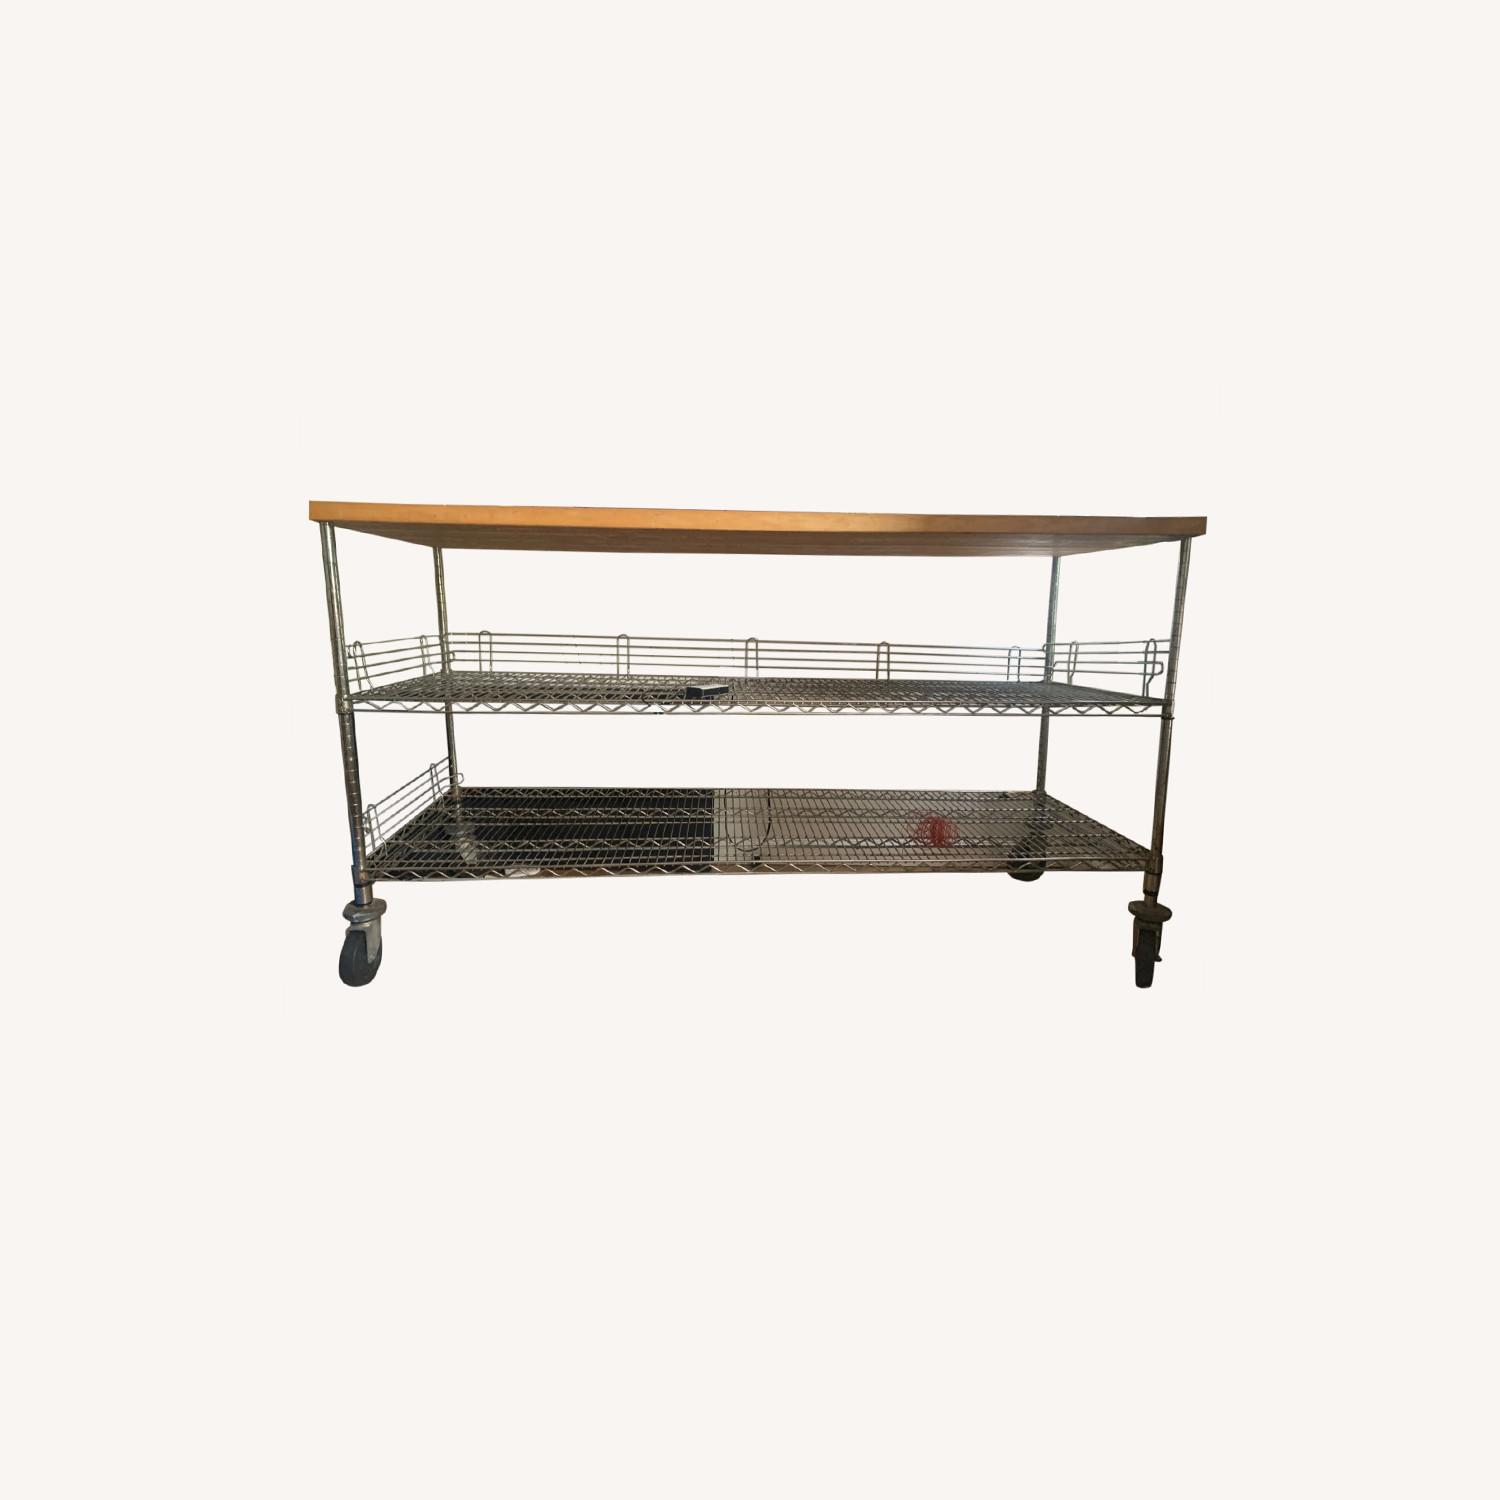 Home Depot Rolling Workbench Wood Top - image-0